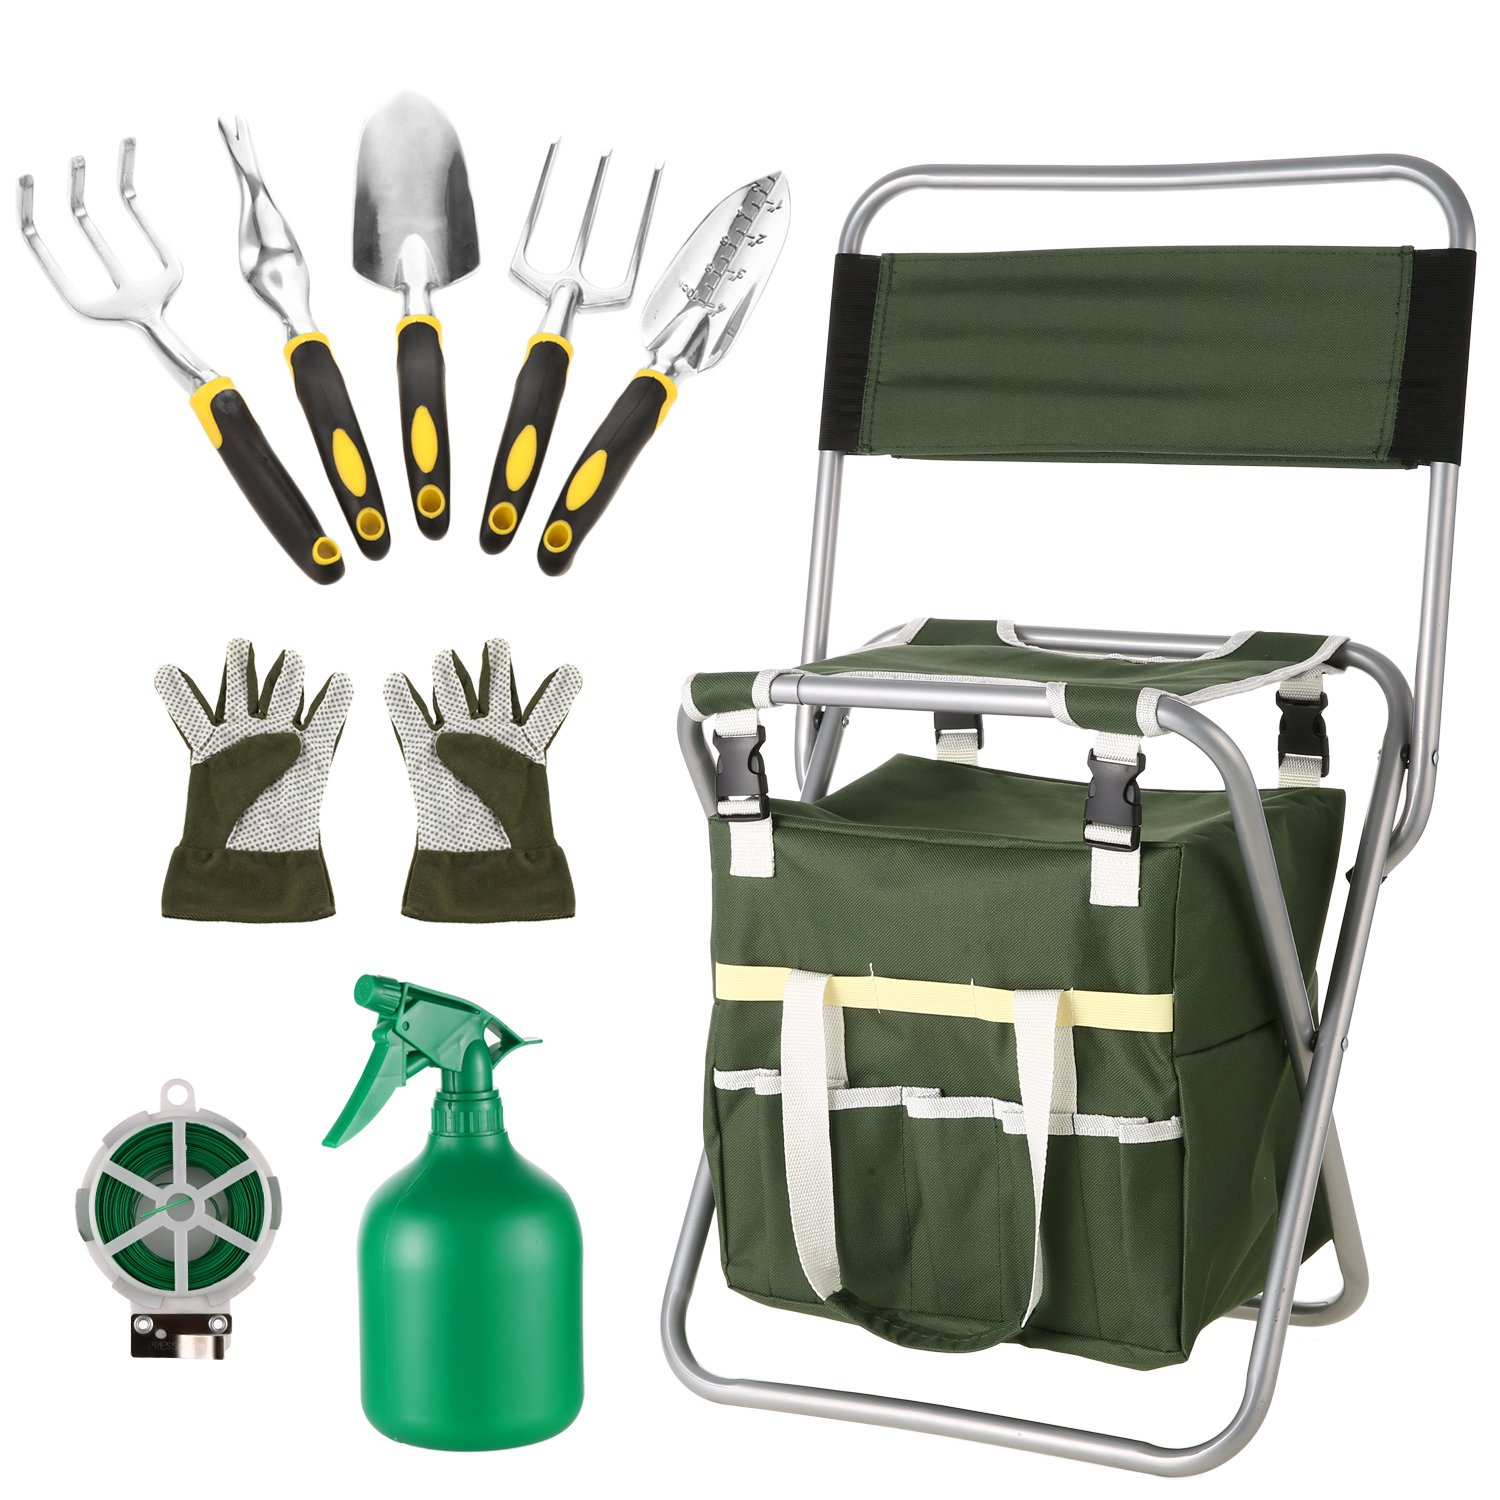 Moroly 10 Piece Garden Tool Set with 5 Sturdy Stainless Steel Tools,Heavy Duty Folding Seat Stool with Backrest,Detachable Canvas Tote,Best Gardening Gifts Tool Set